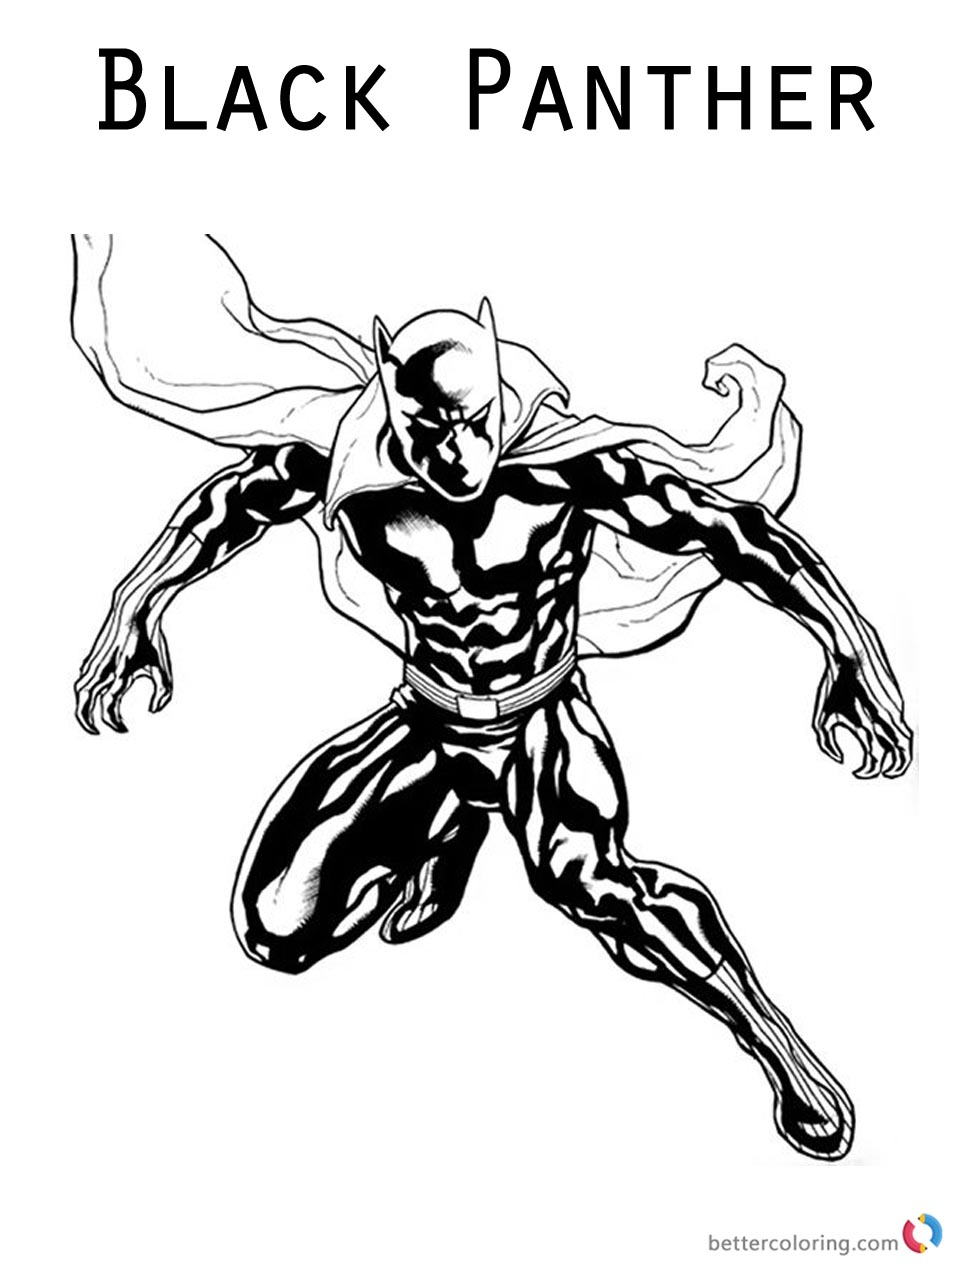 Movie Black Panther Coloring Pages Jumping to Fight